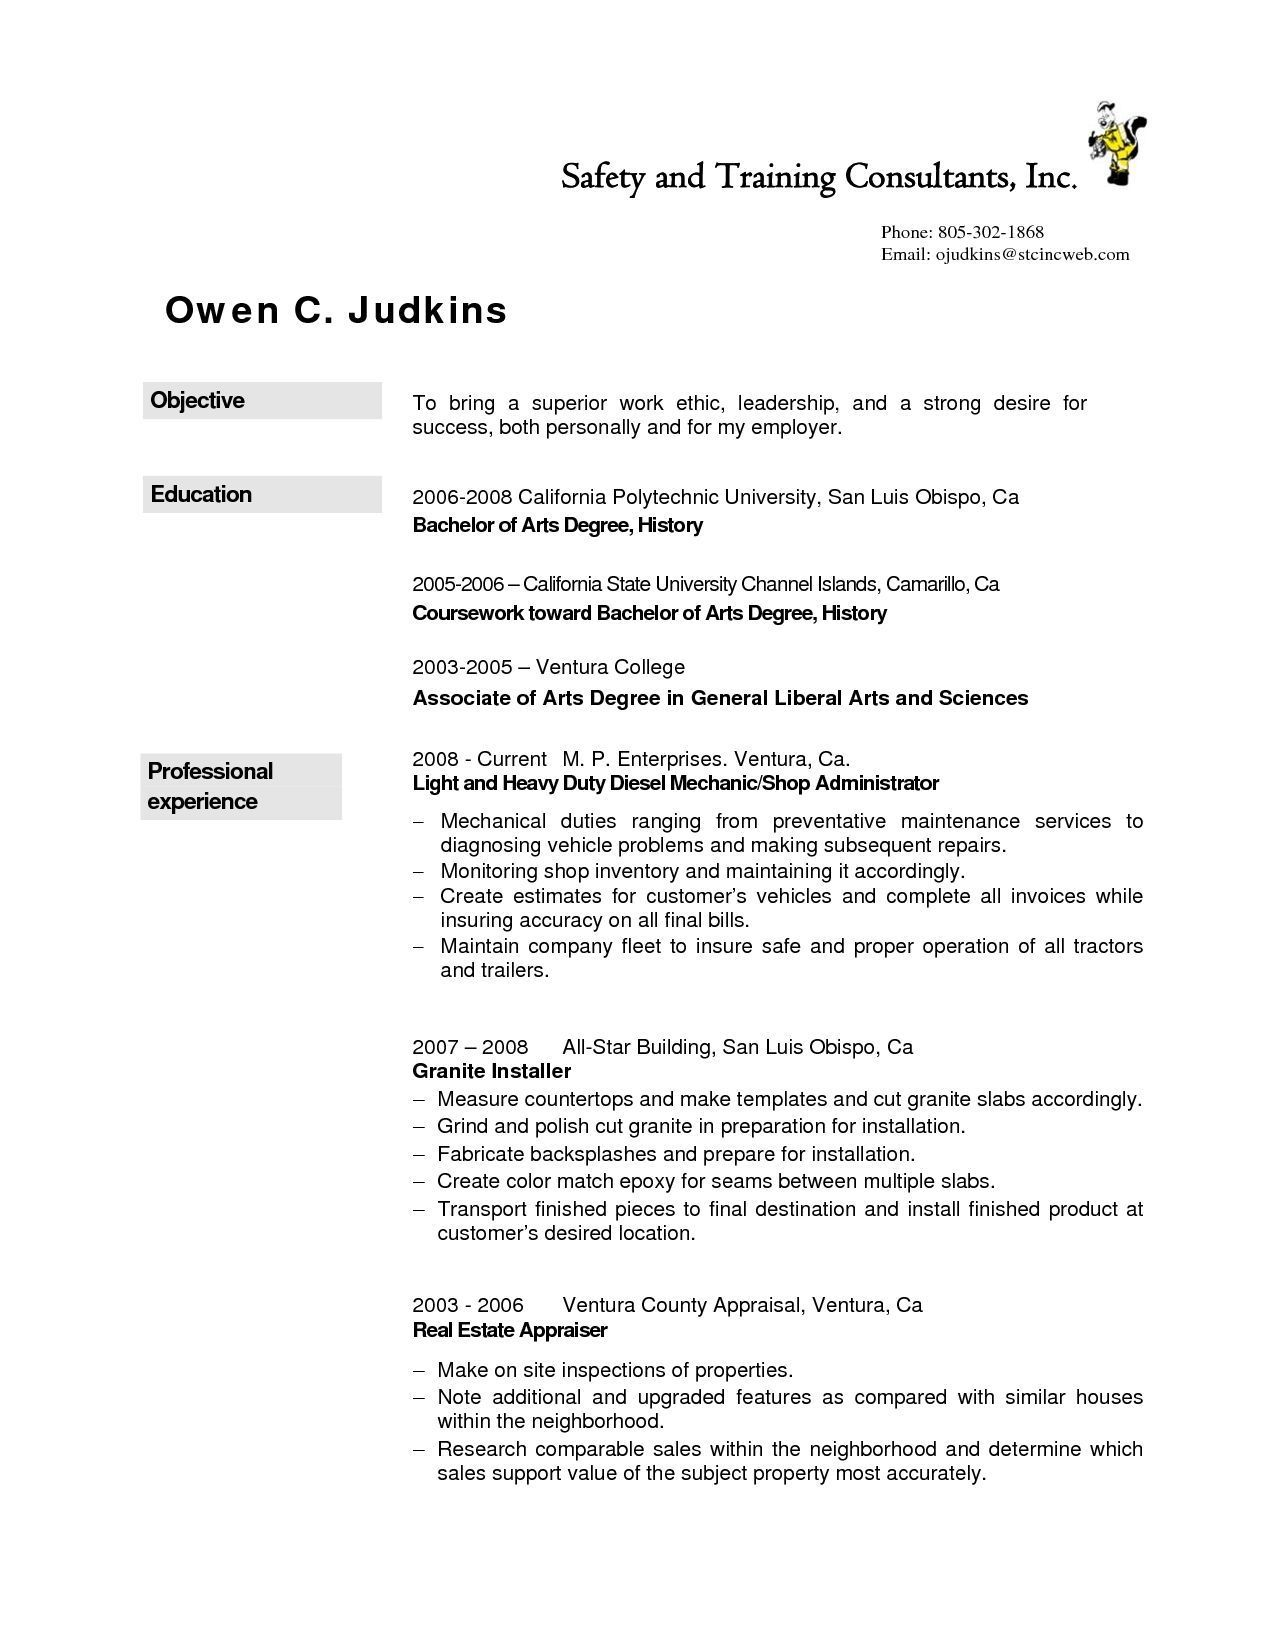 diesel mechanic resume example best examples samples franchise owner accounting assistant Resume Diesel Mechanic Resume Samples Examples